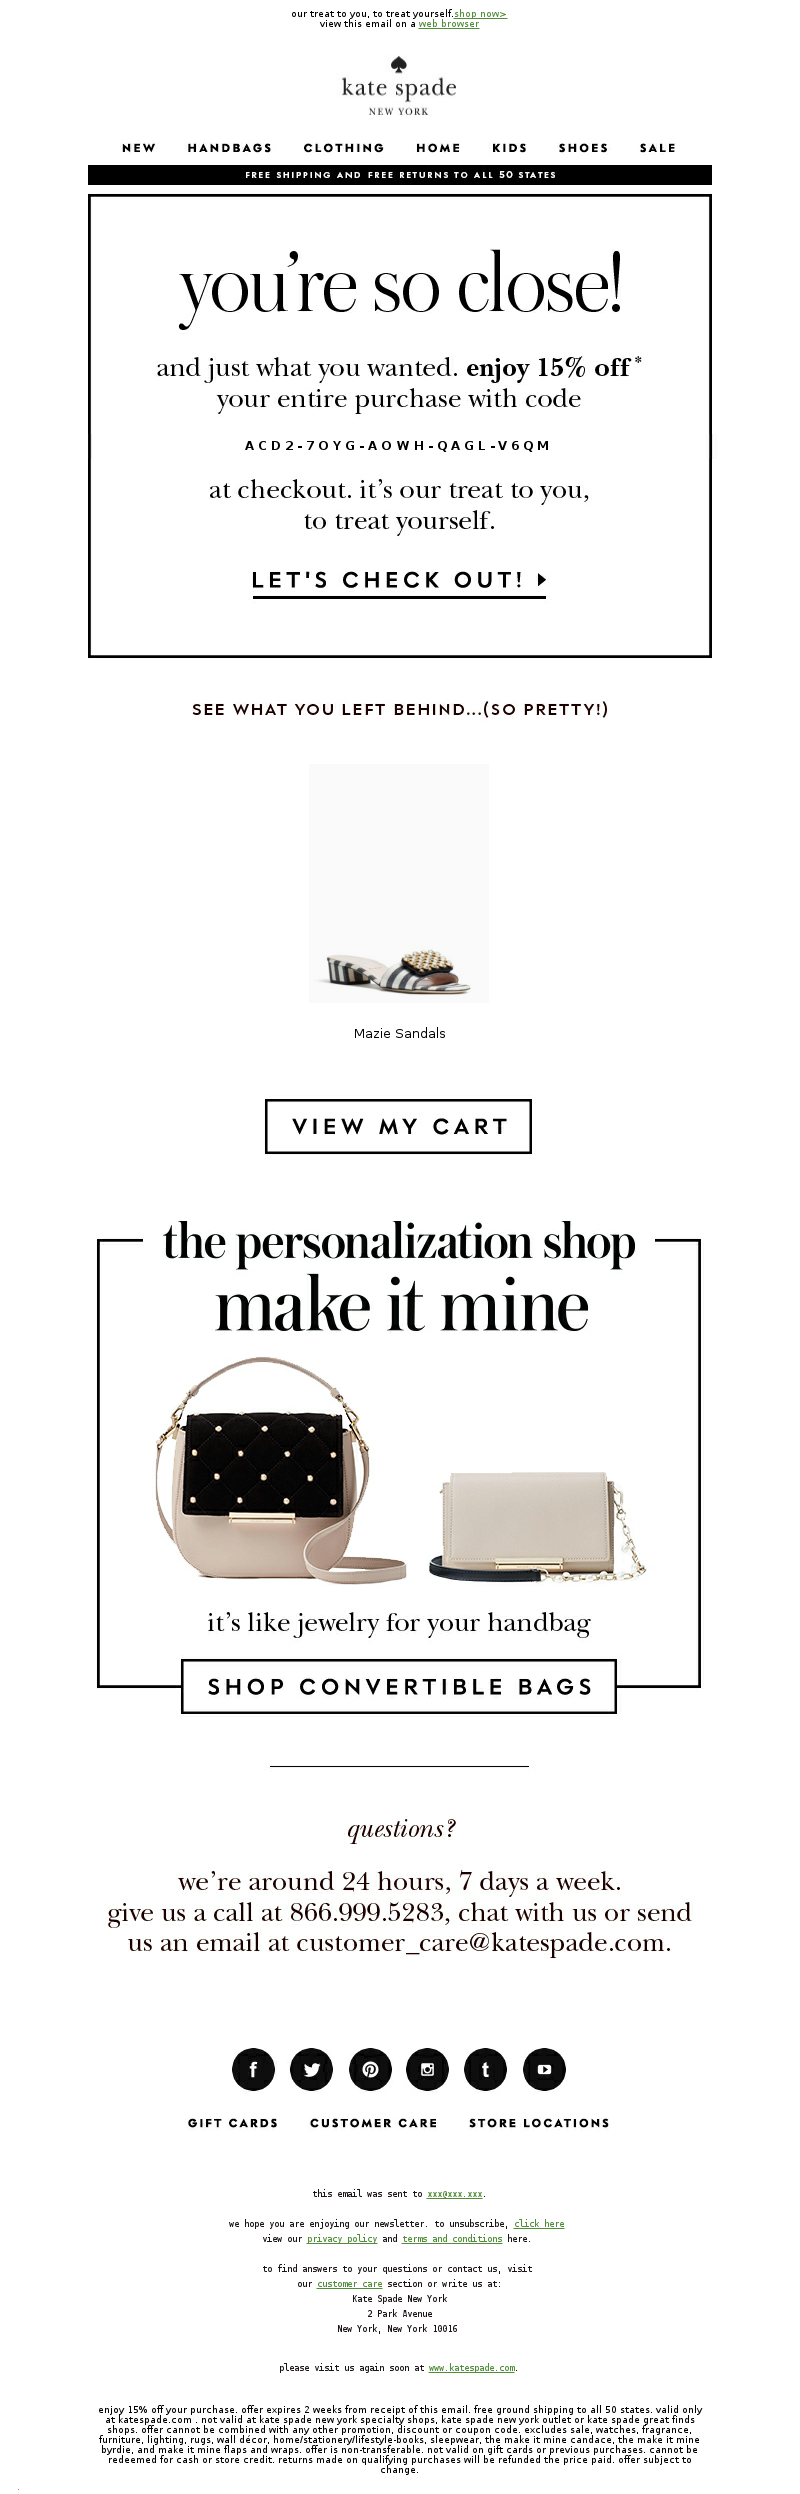 Kate Spade Abandoned Cart Email